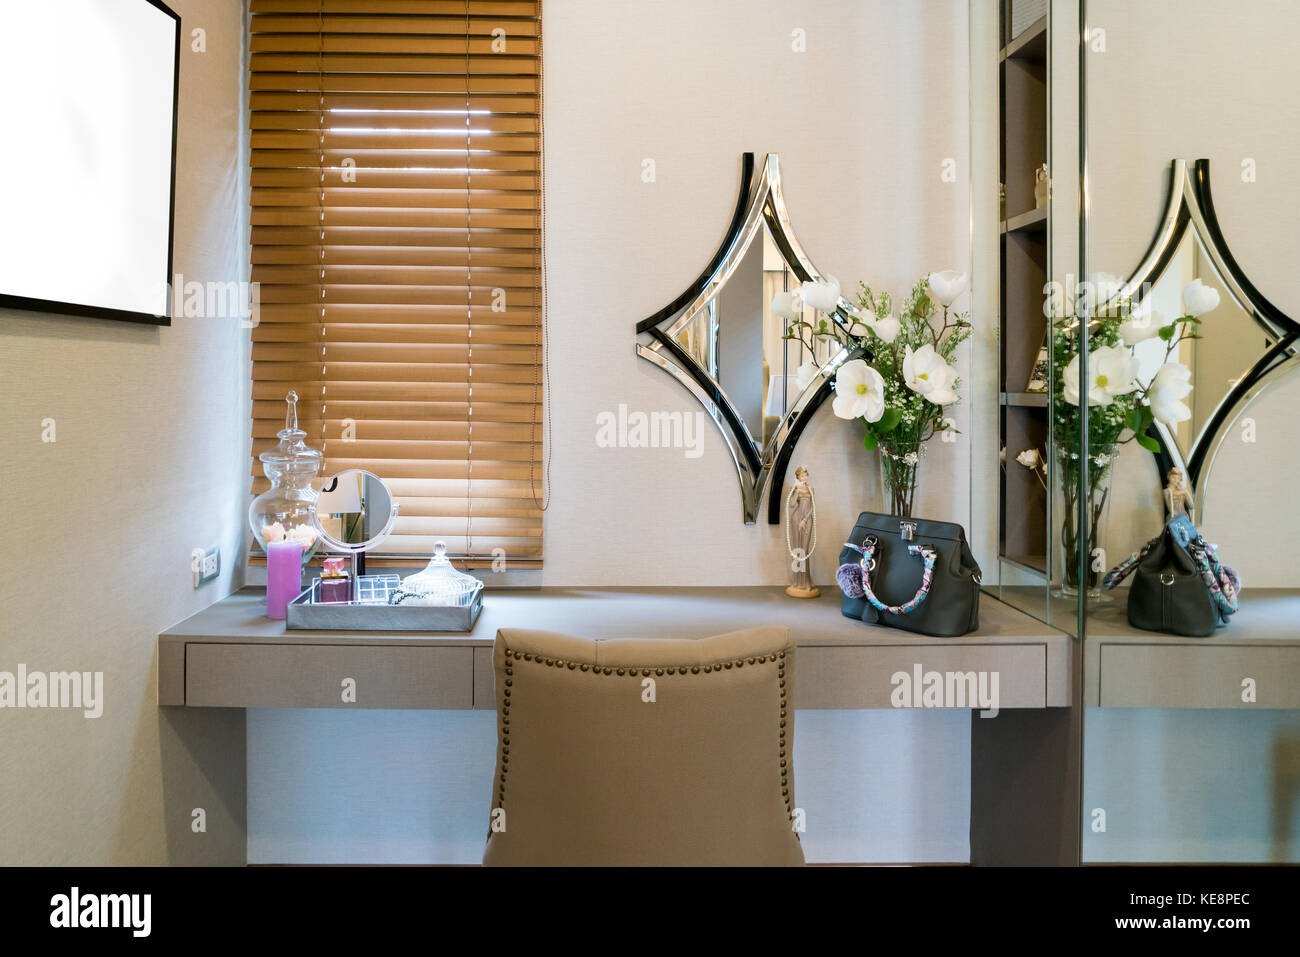 Modern Closet Room With Make Up Vanity Table Mirror And Cosmetics Stock Photo Alamy